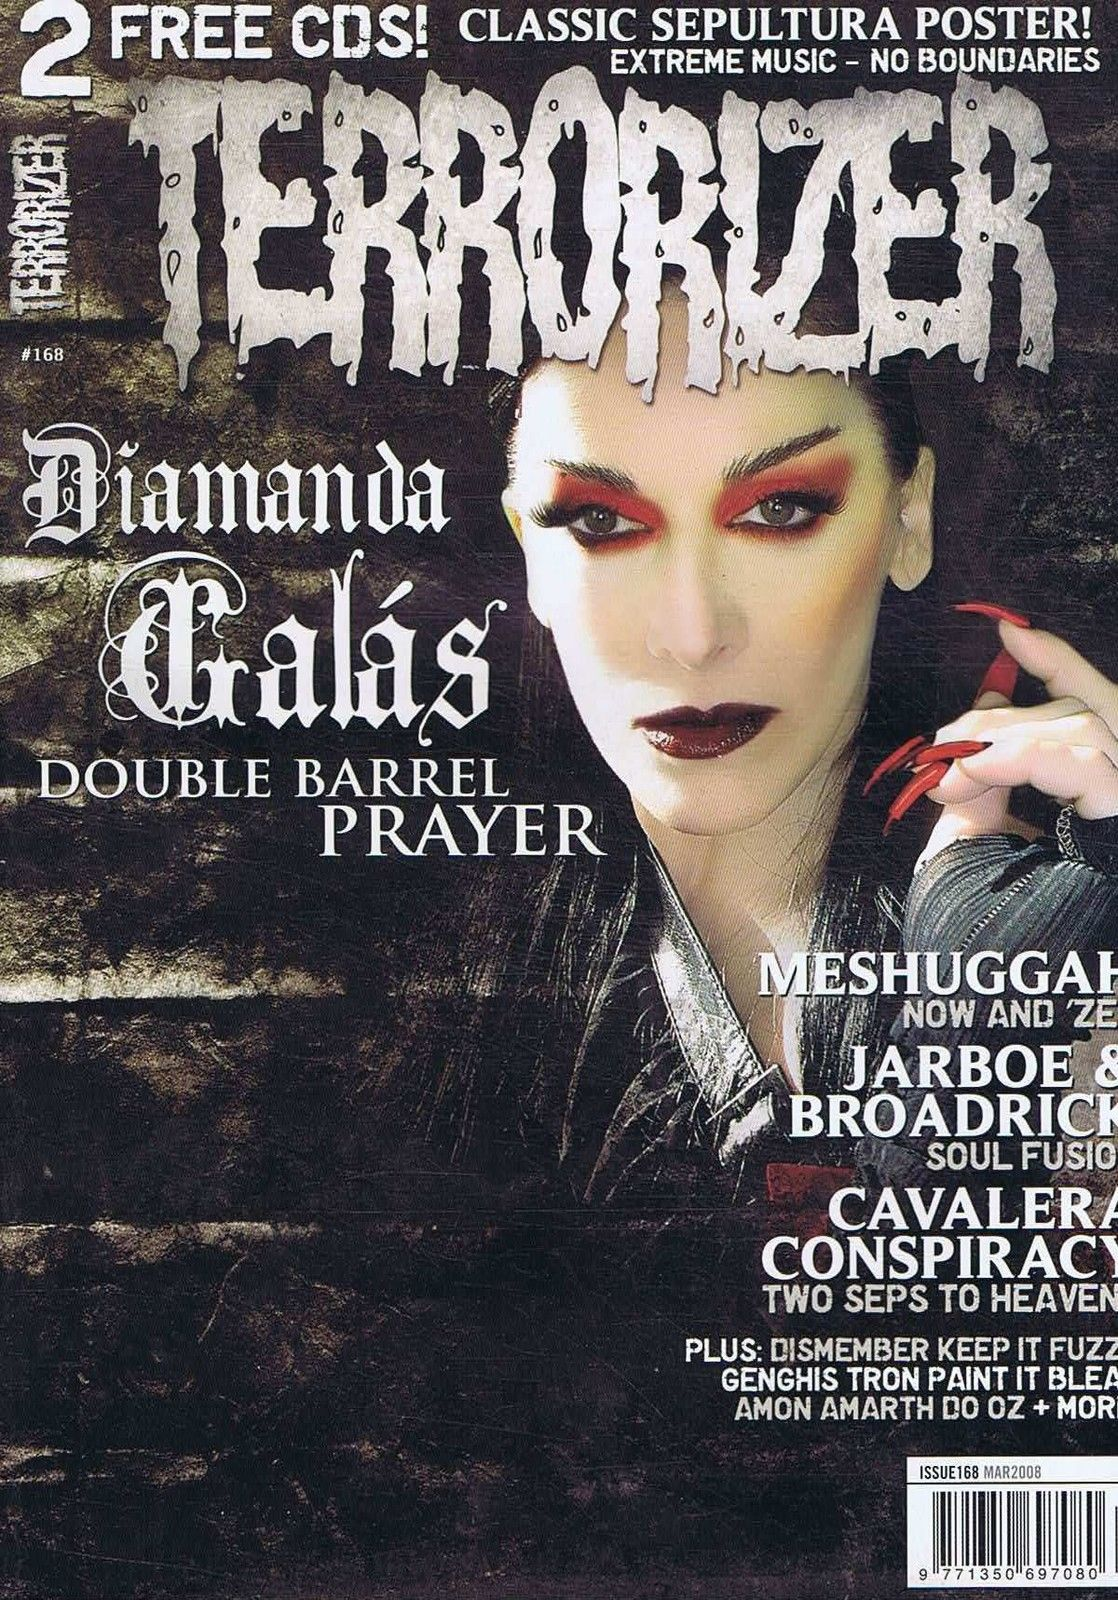 Augustine Featured - March 2008  - In Terrorizer Magazine Issue #168 in Fear Candy CD #52a March 2008 with our Song